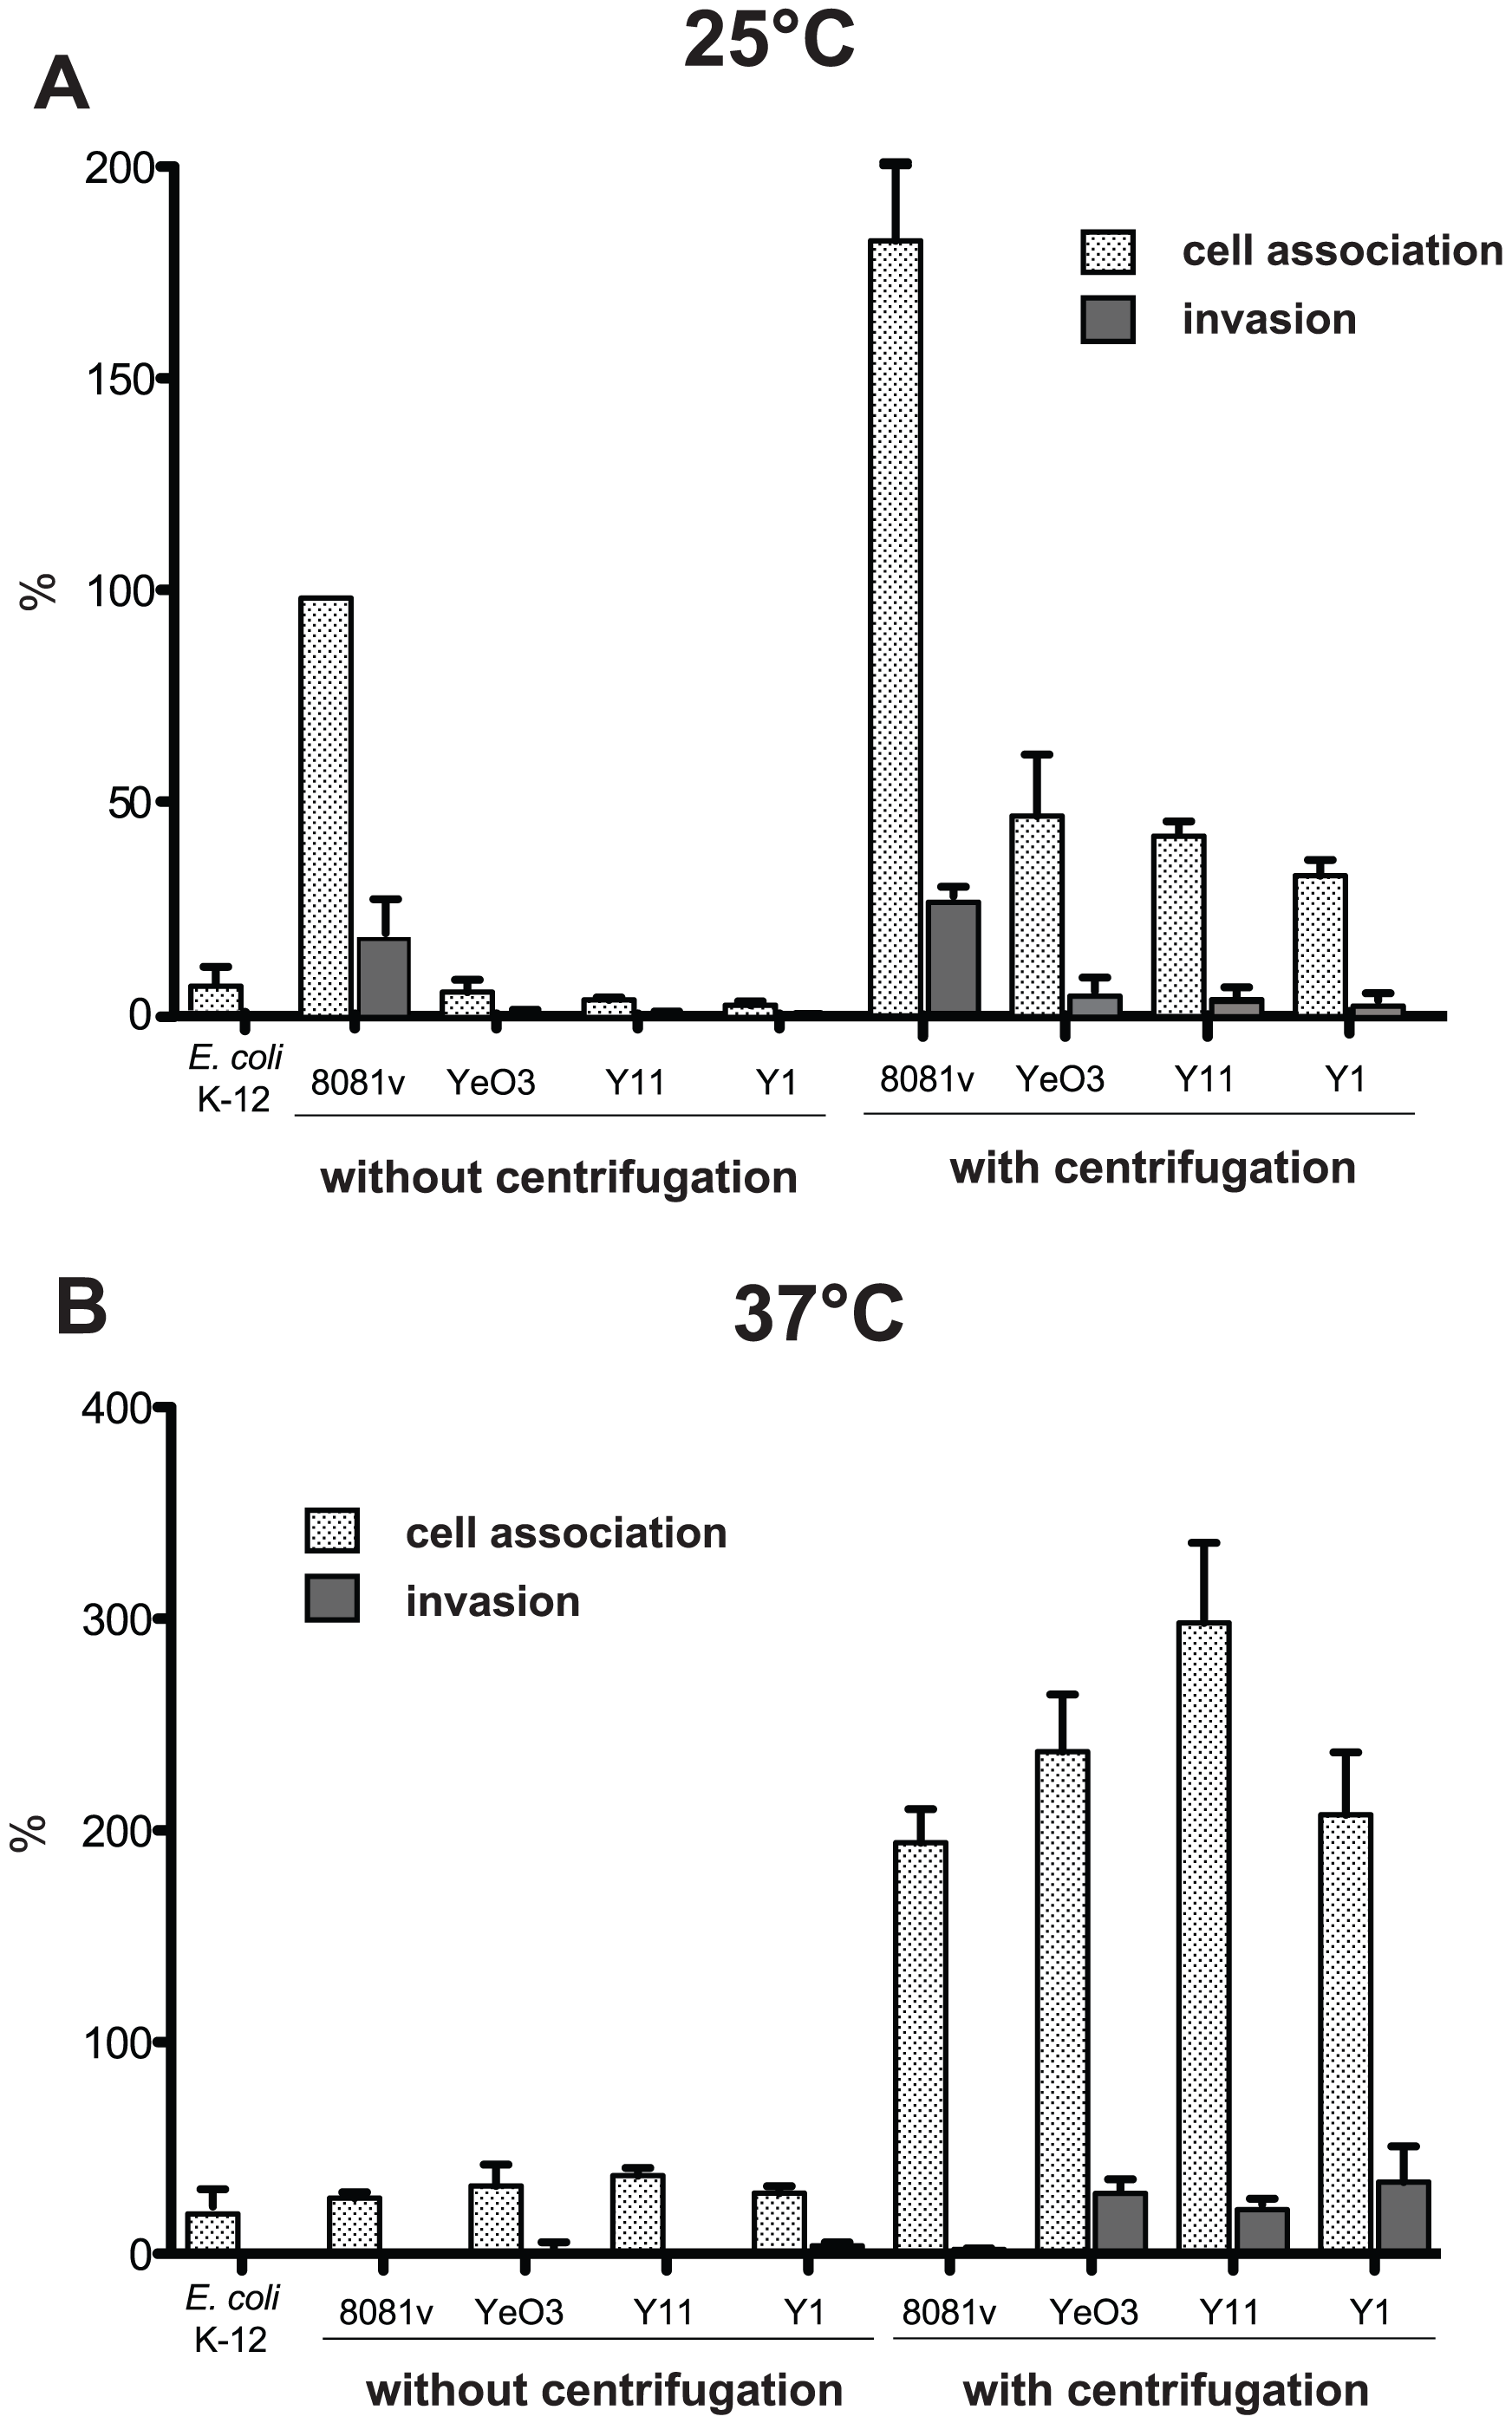 Host cell interaction of <i>Y. enterocolitica</i> O:3 by InvA at 25°C is less efficient due to amotility.